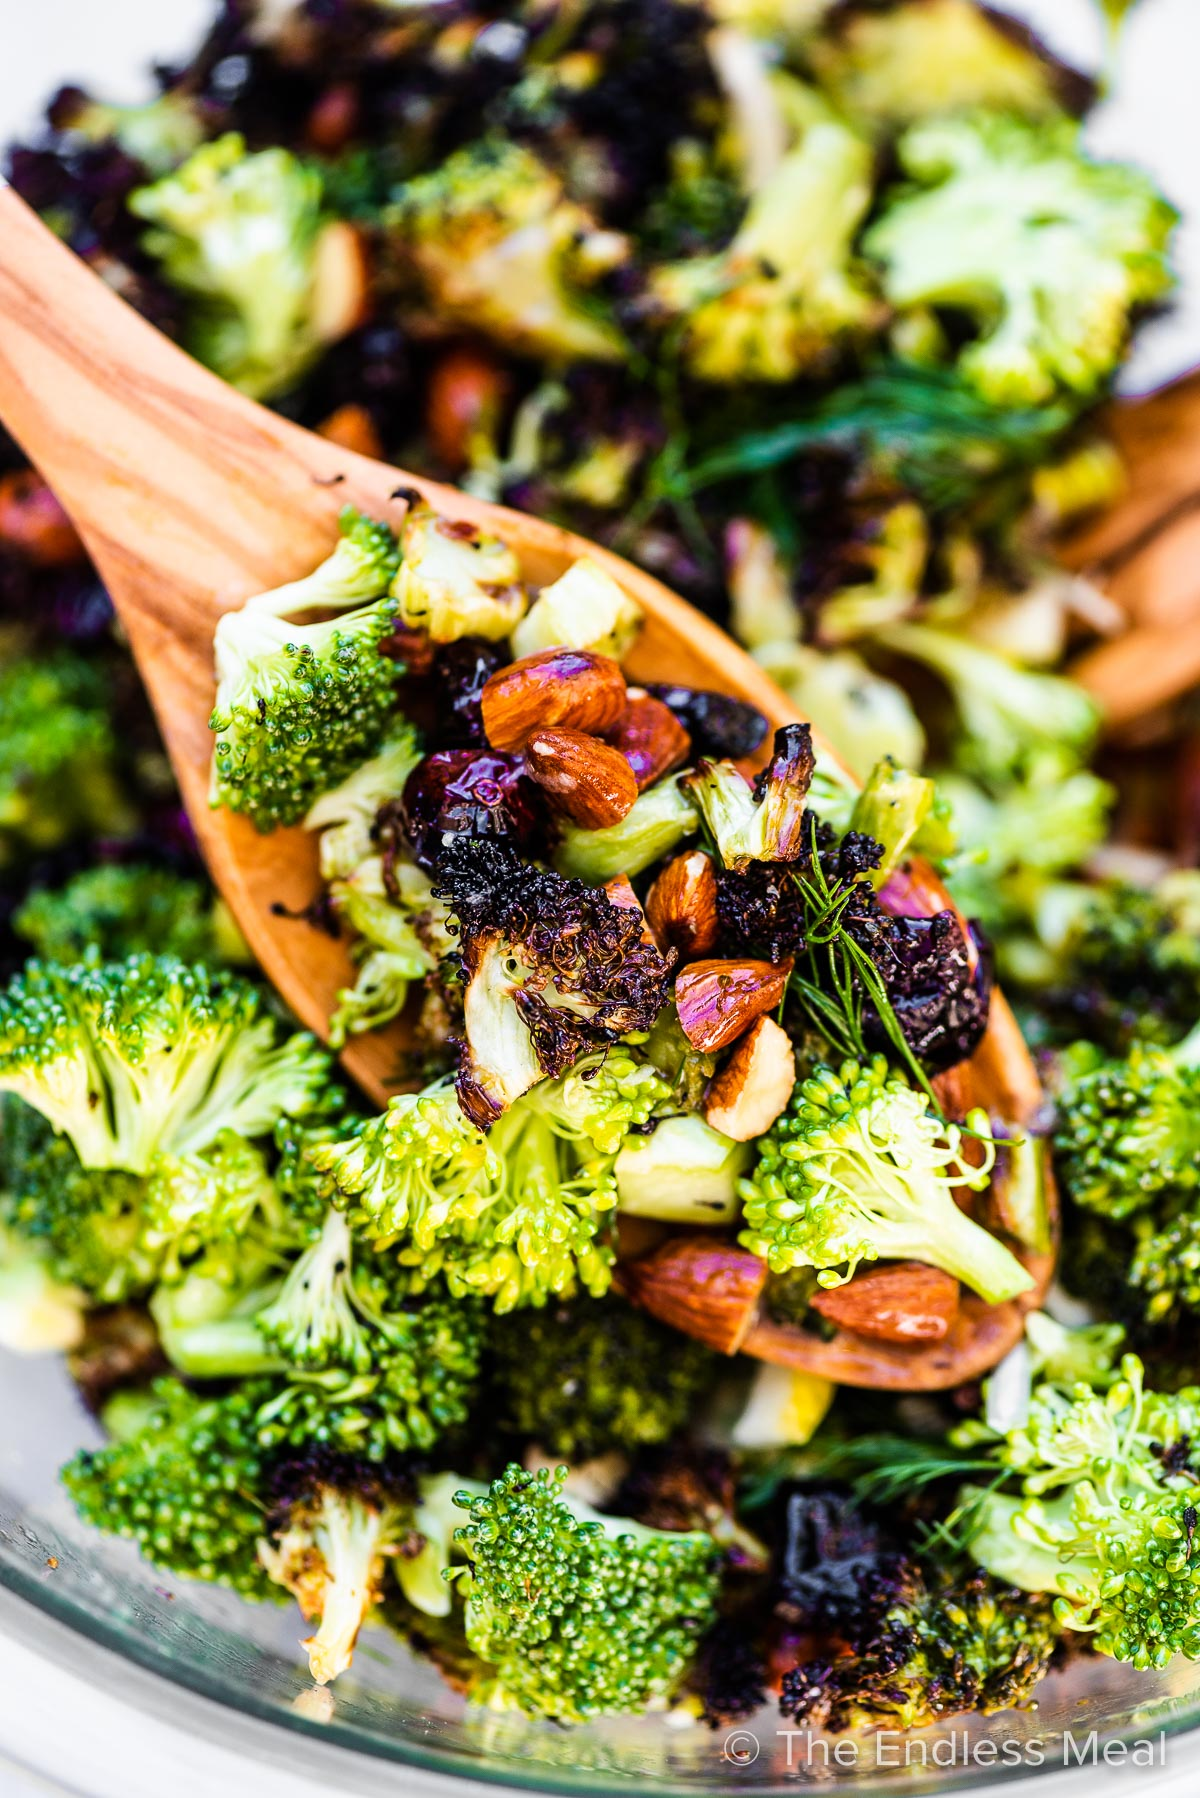 A scoop of roasted broccoli salad on a wooden spoon.